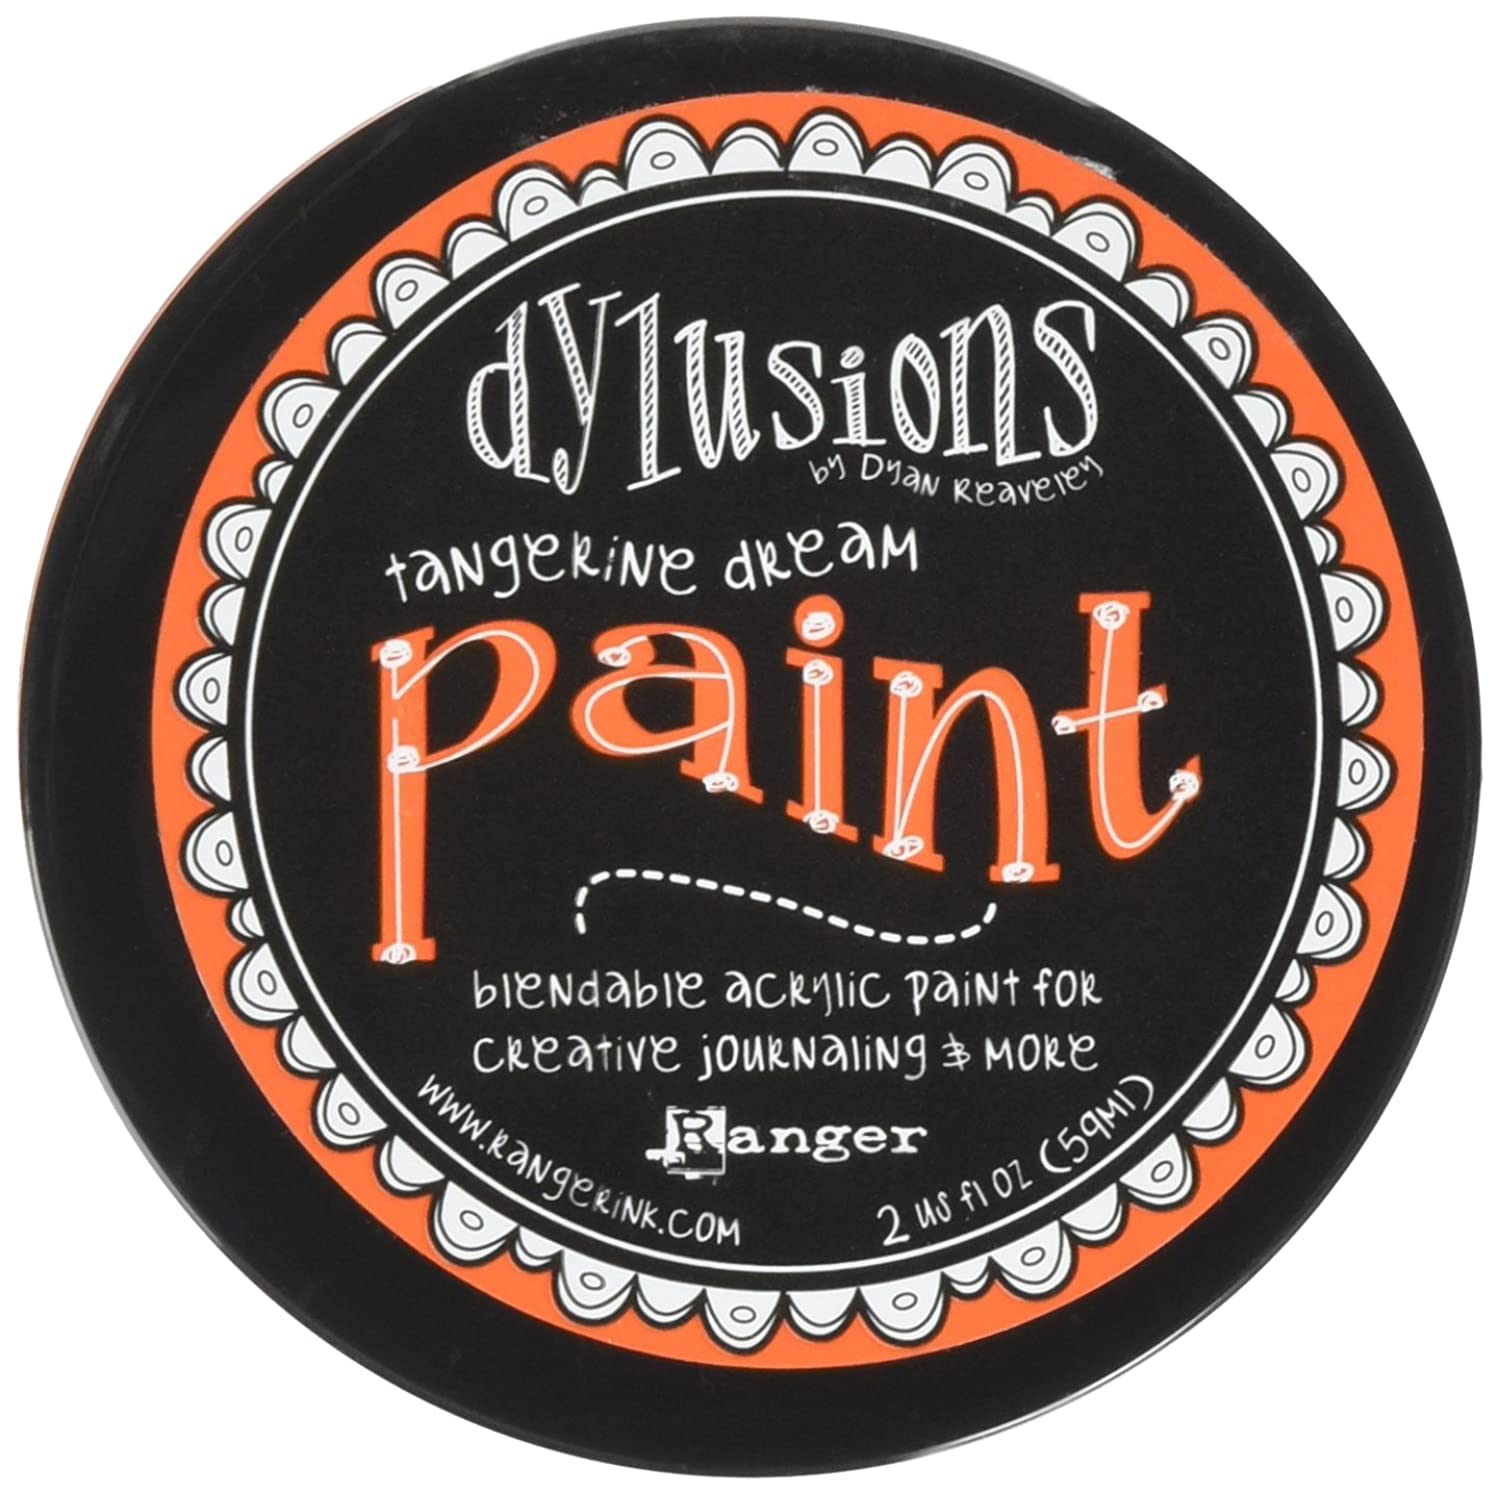 Ranger DYP50995 Dylusions by Dyan Reaveley Blendable Acrylic Paint, 2 oz, Tangerine Dream